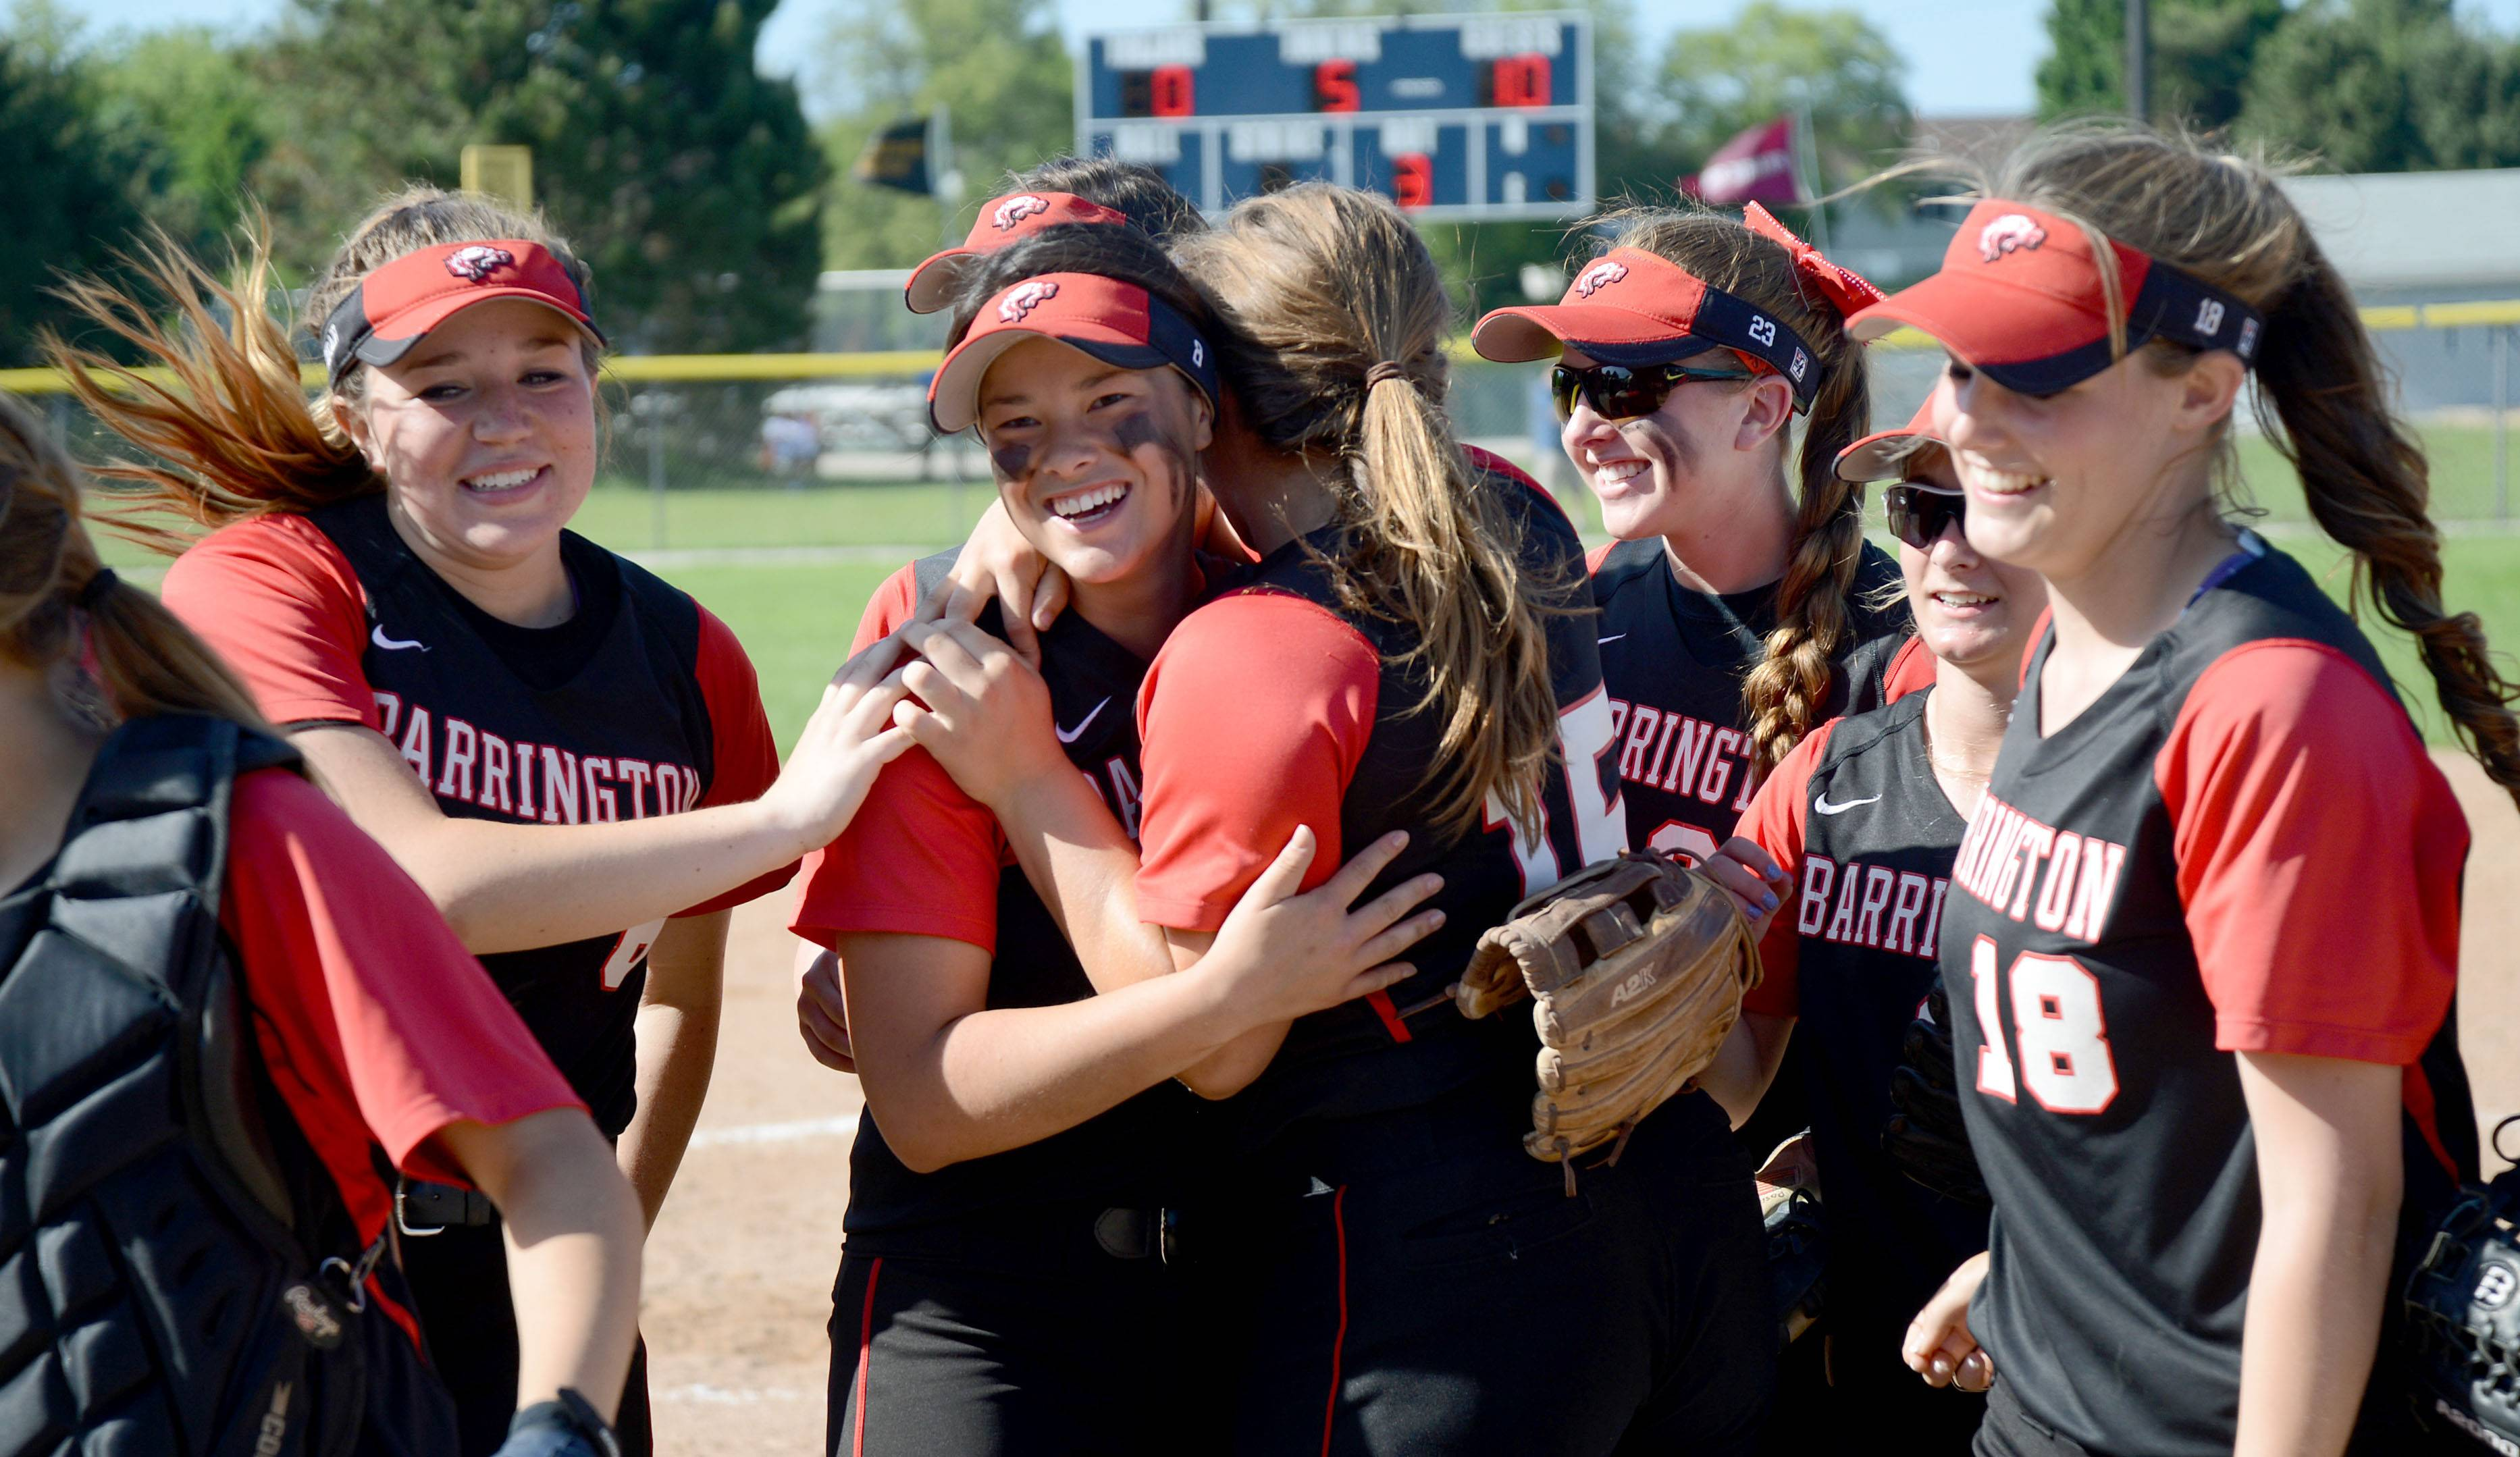 Barrington's Keenan Dolezal, center, facing, is hugged by teammate Rachel MacDonald (15) and others after their 10-0 win over Cary-Grove in the Class 4A girls softball regional championship in Cary on Friday, May 30.